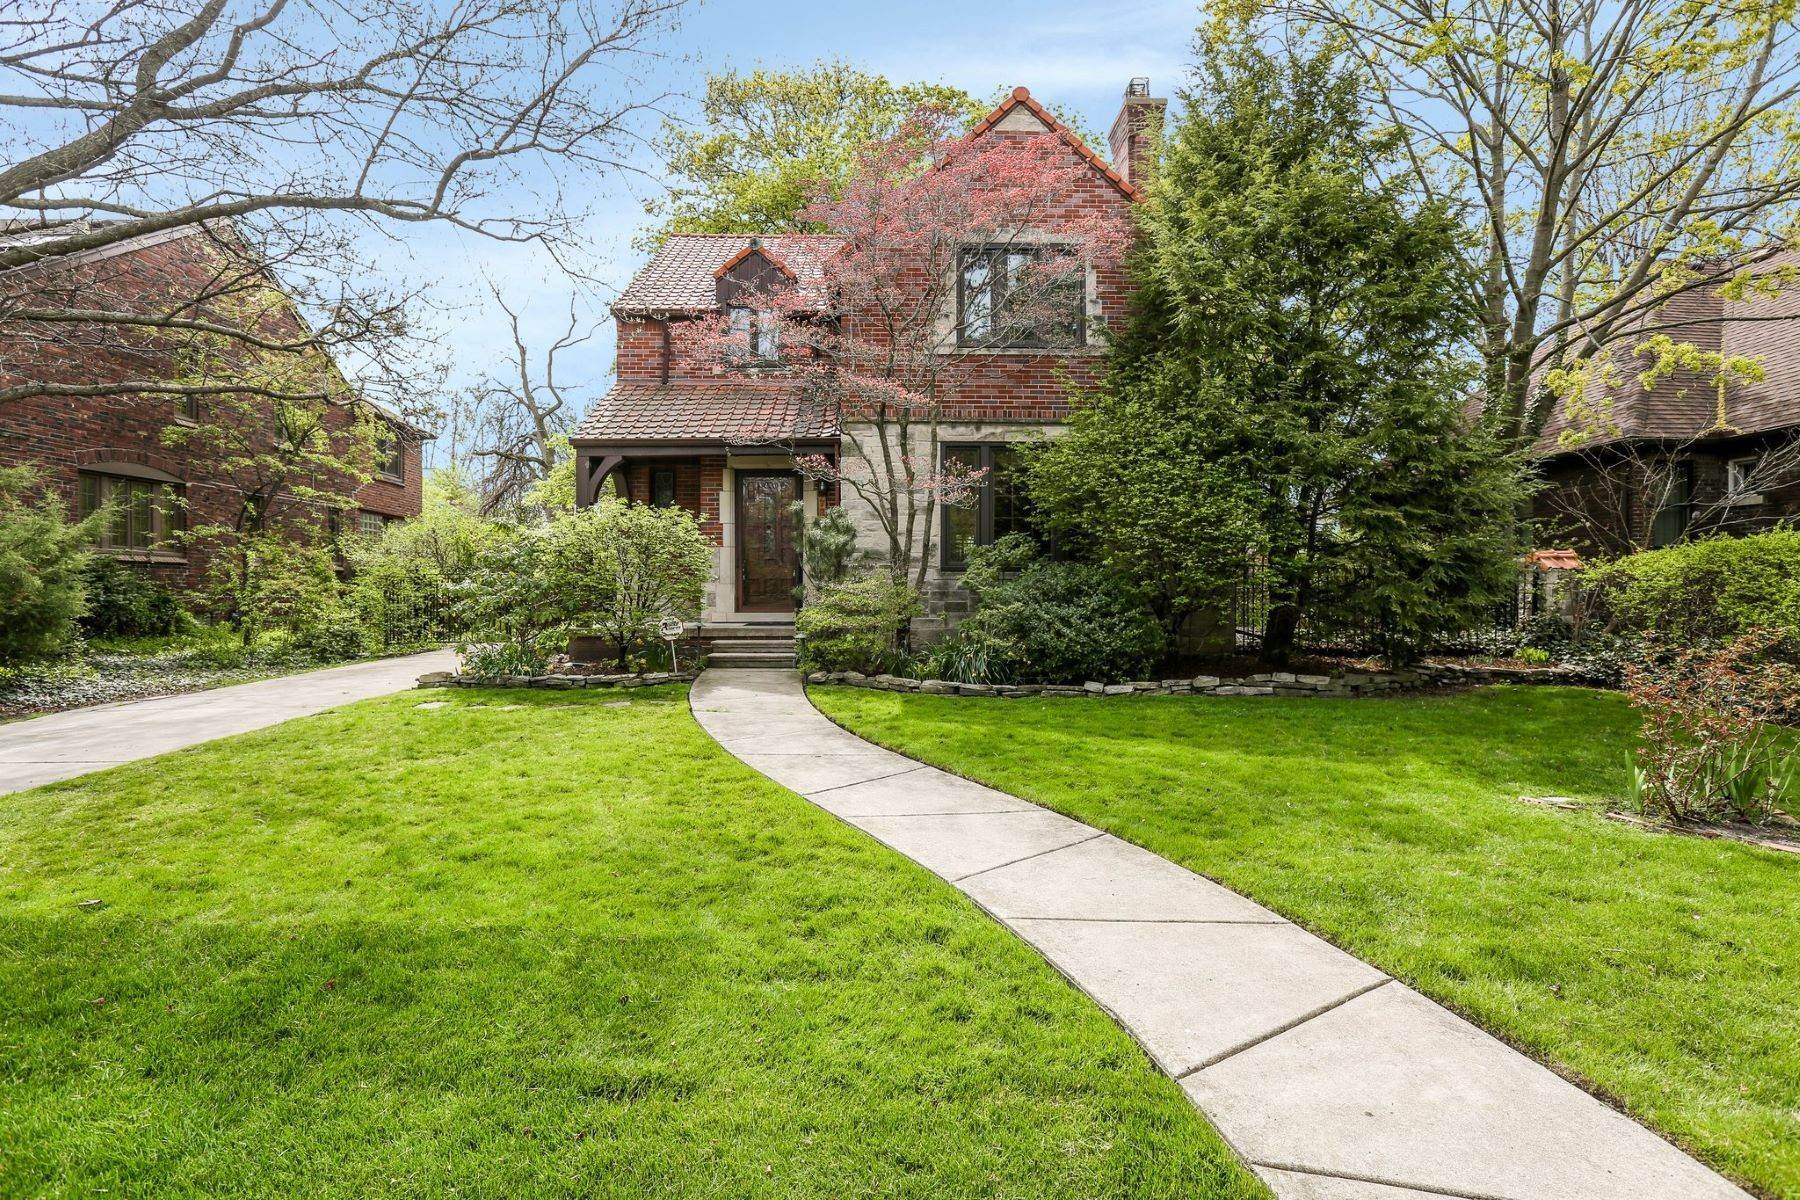 Single Family Homes for Sale at Grosse Pointe Park 723 Barrington Rd Grosse Pointe Park, Michigan 48230 United States